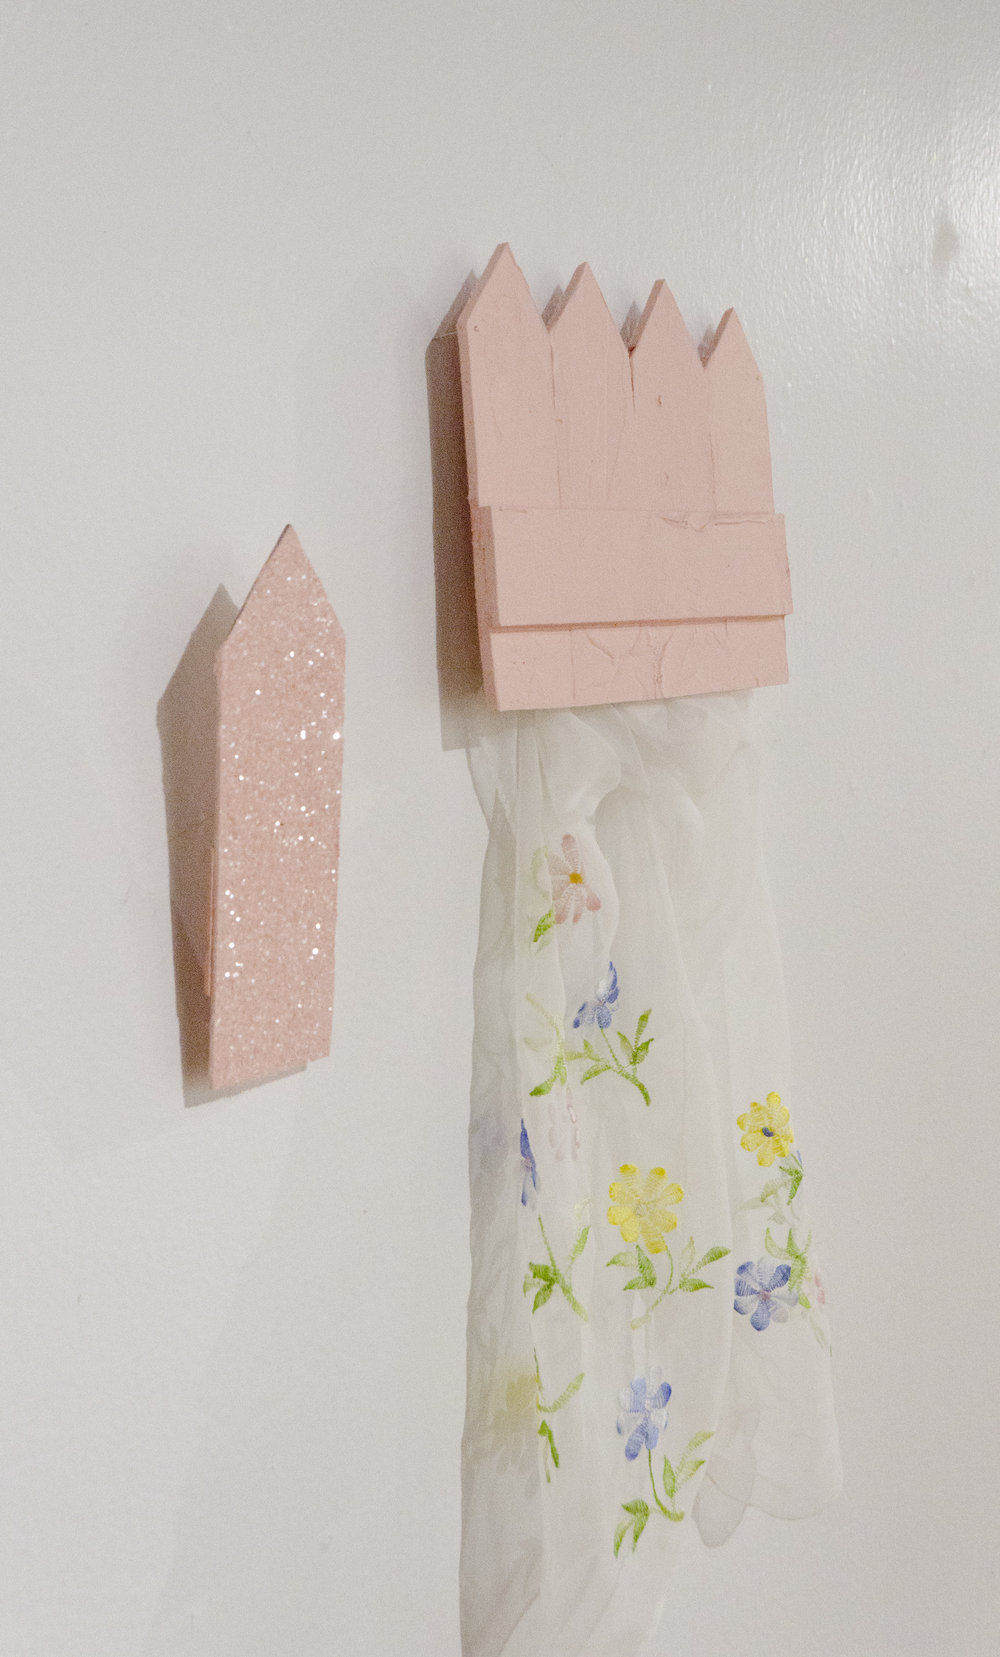 Just a bit of a garden  (Detail)   2018   Acrylic, glitter, and fabric, on foam and wood